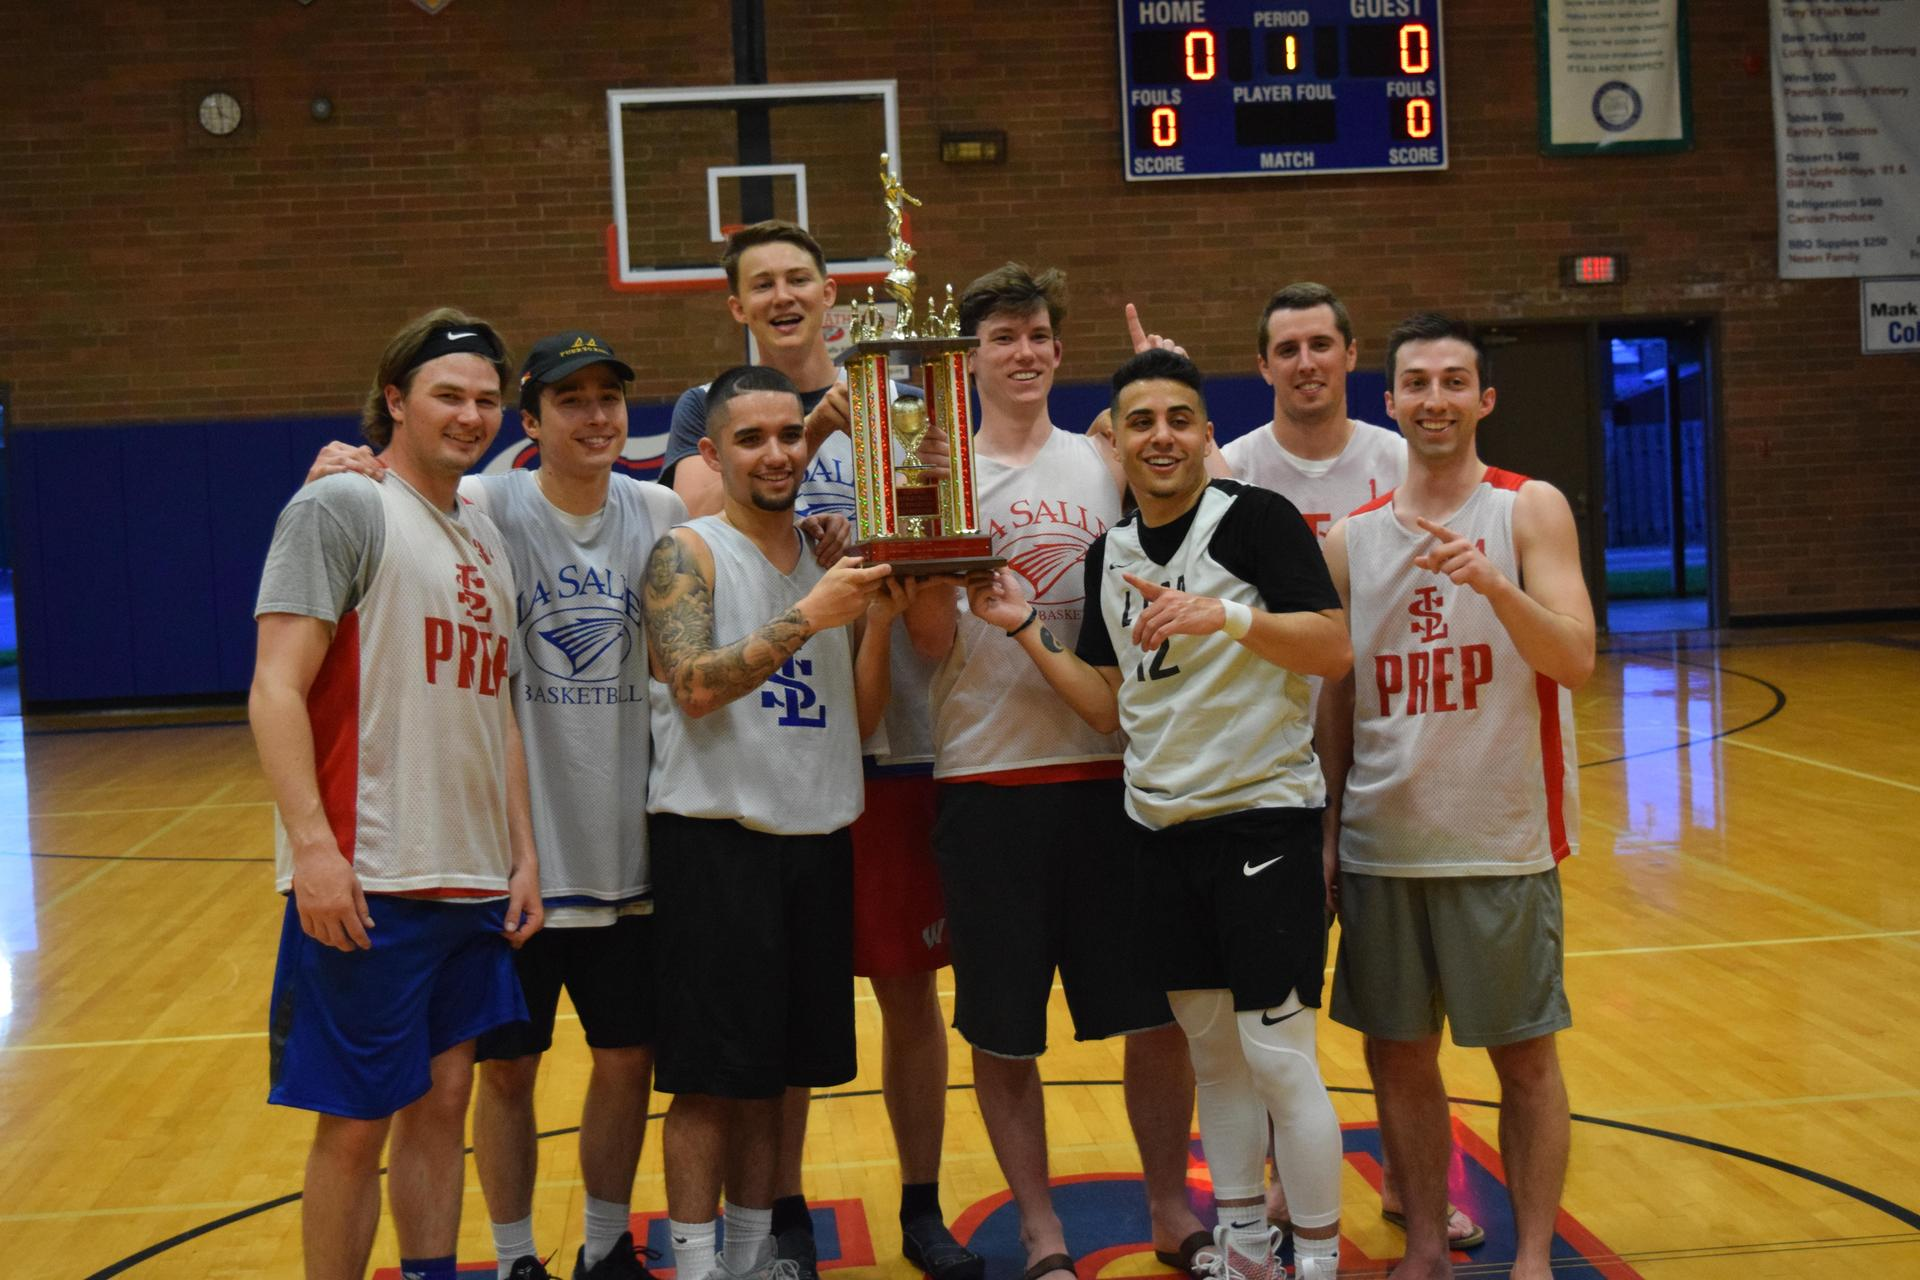 class of 2013 alumni basketball team posing with trophy